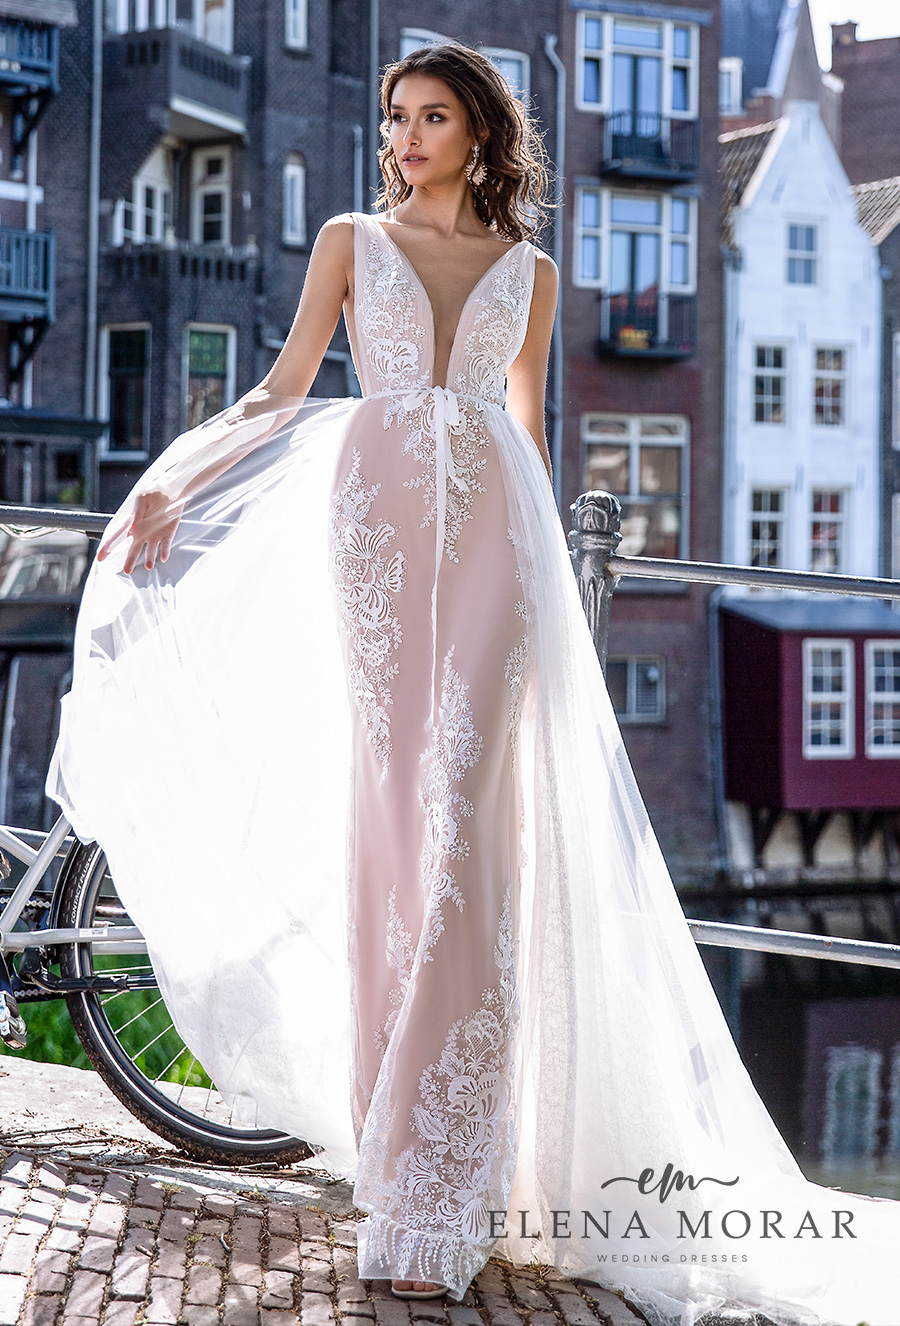 elena morar 2021 rotterdam bridal sleeveless deep plunging v neck full embellishment romantic soft a line wedding dress chapel train (rm003) mv